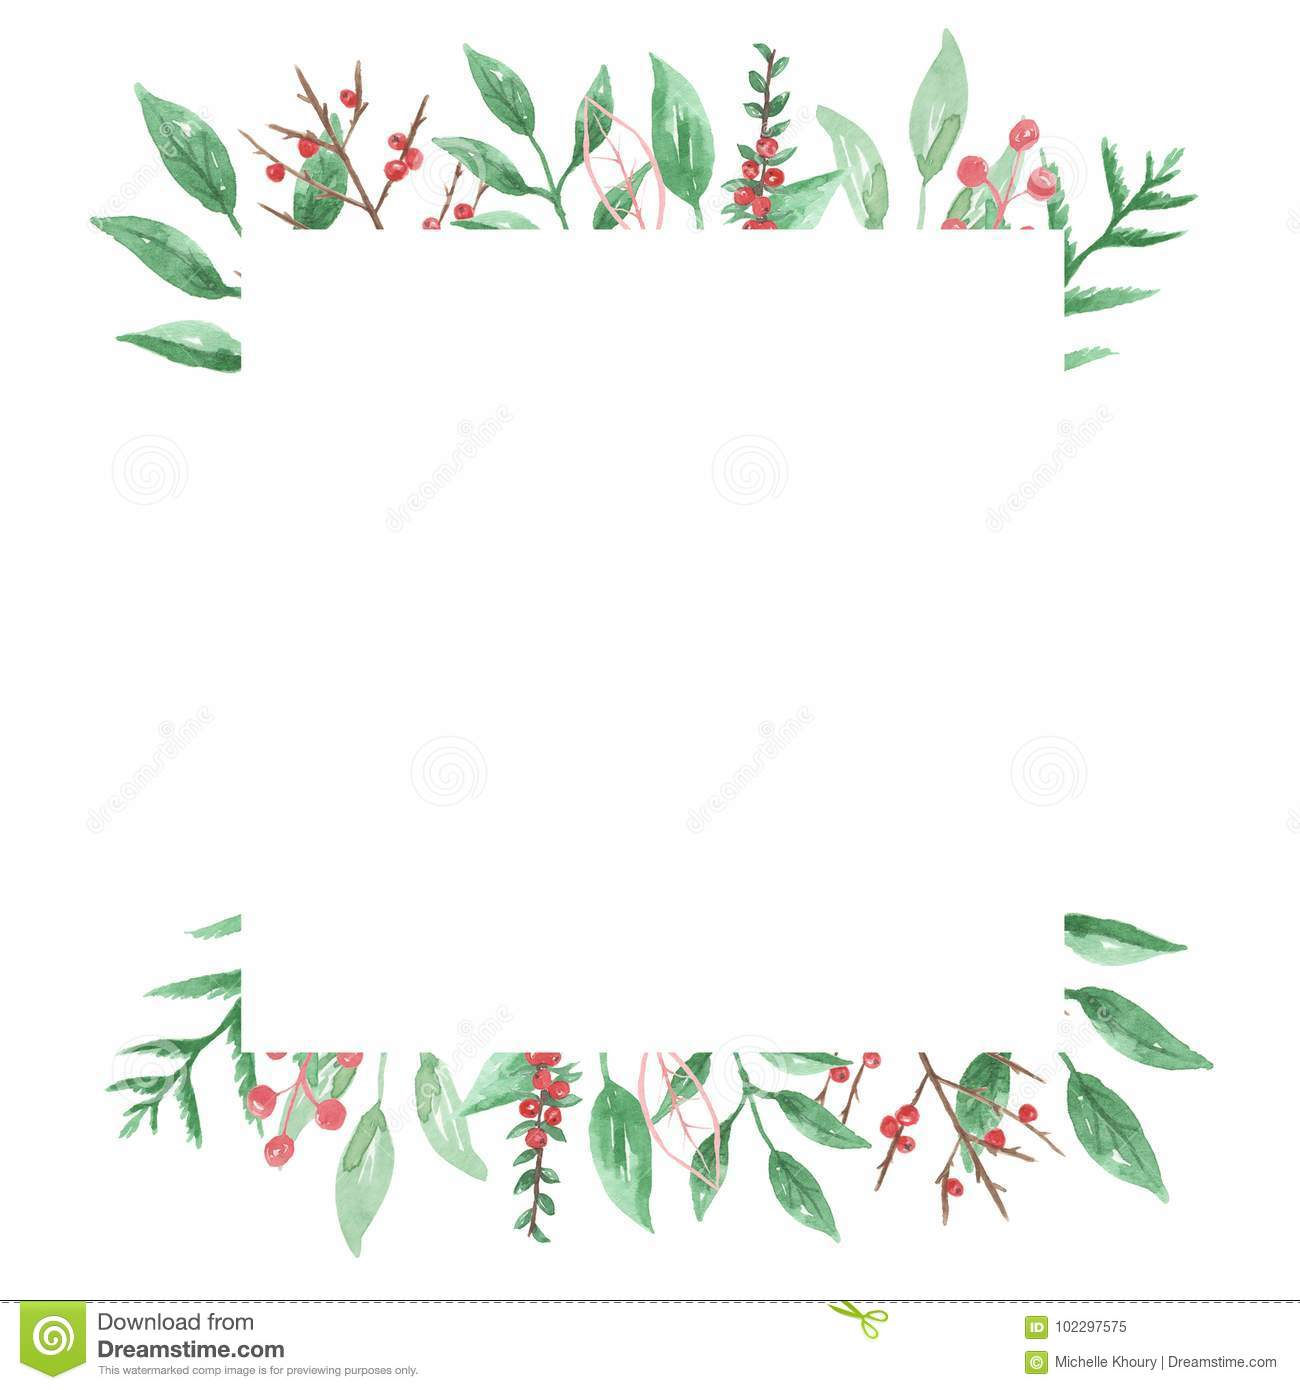 Watercolor Festive Winter Border Holidays Wreath Holly Berry Square Stock Illustration Illustration Of Fall Leaves 102297575